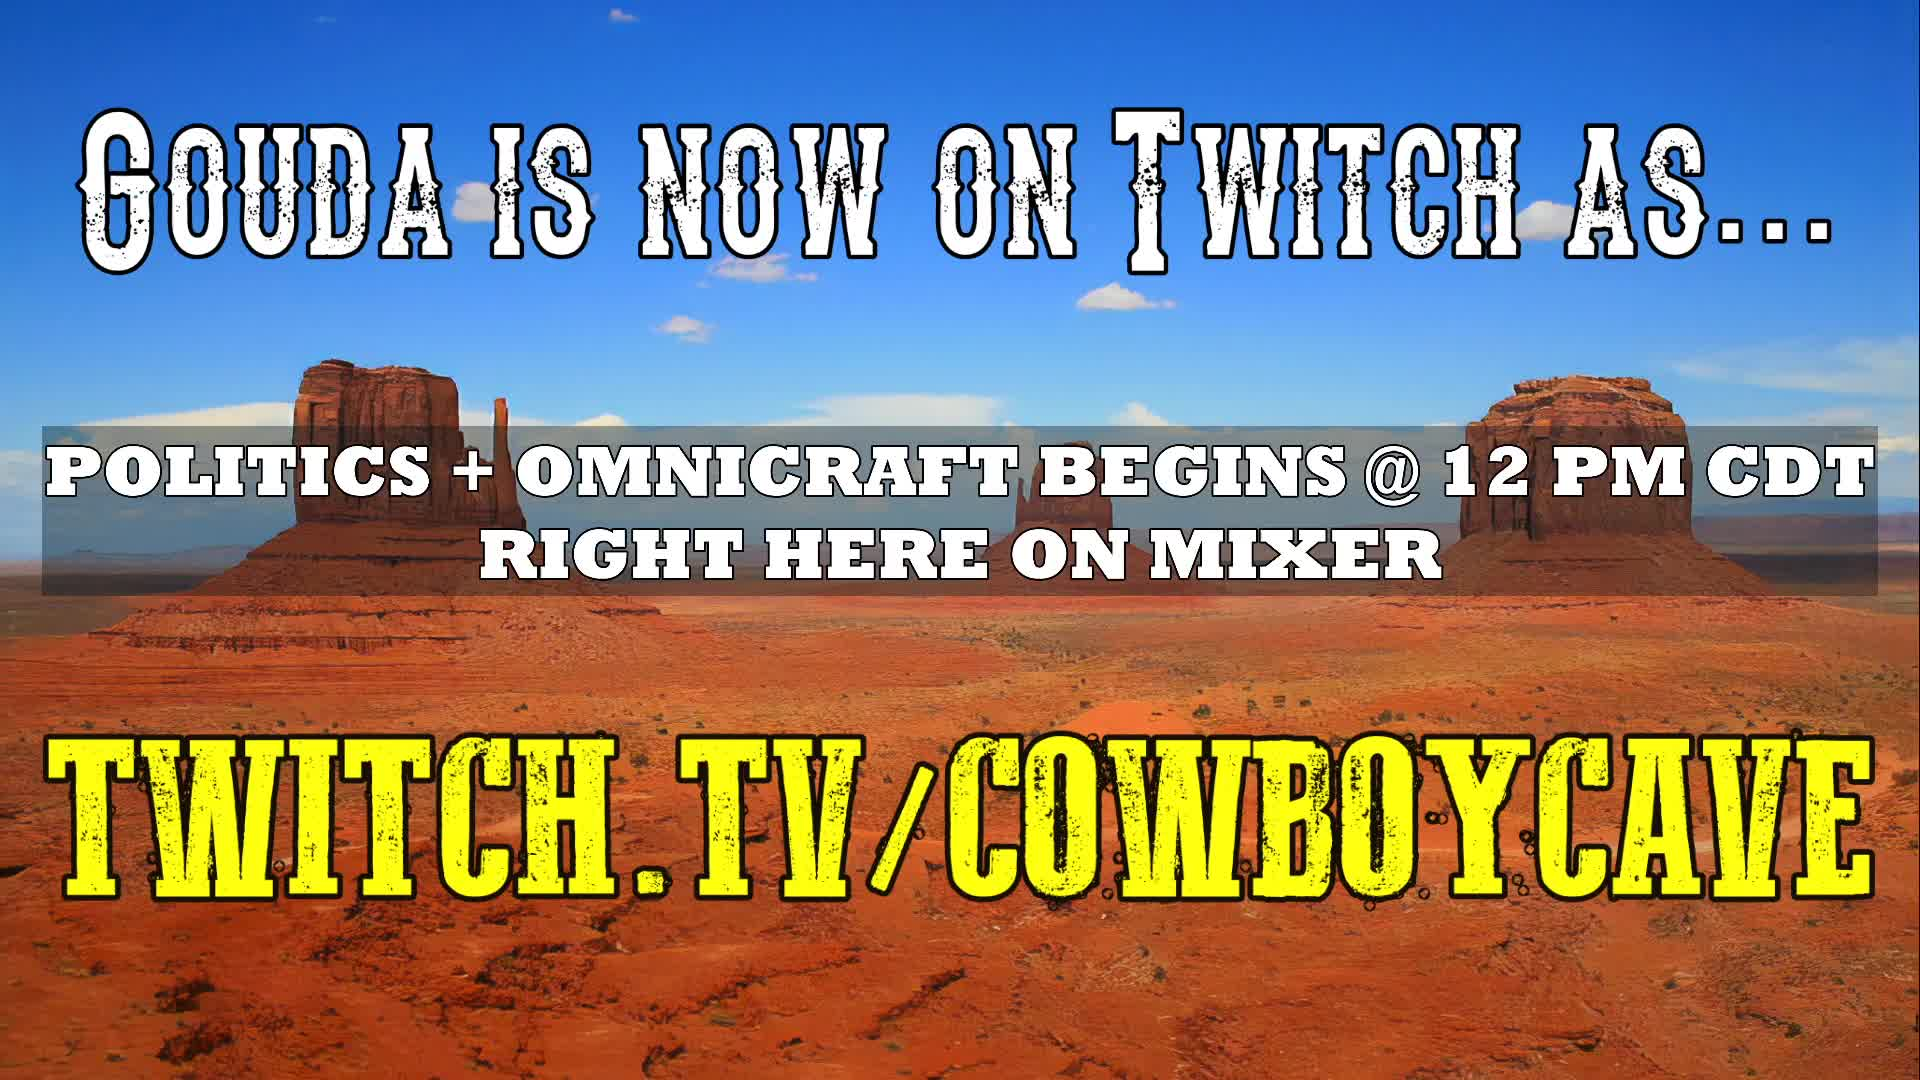 POLITICAL COMMENTARY + OMNICRAFT @ 12 PM CDT | twitch.tv/CowboyCave